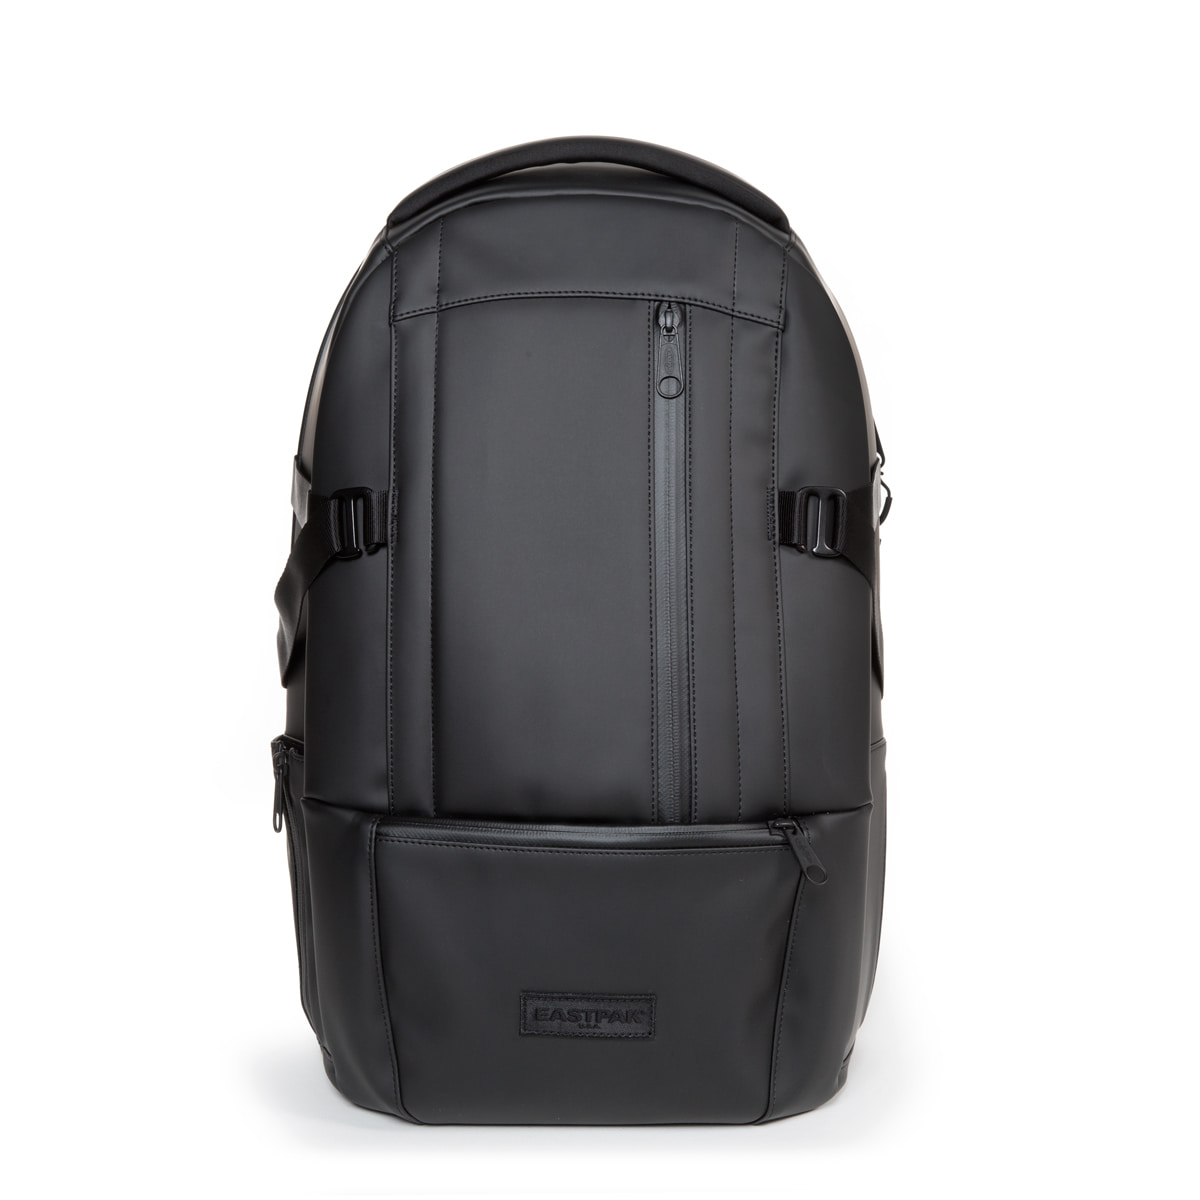 [EASTPAK] STEELTH LAB 백팩 플로이드 EICBA18 33U